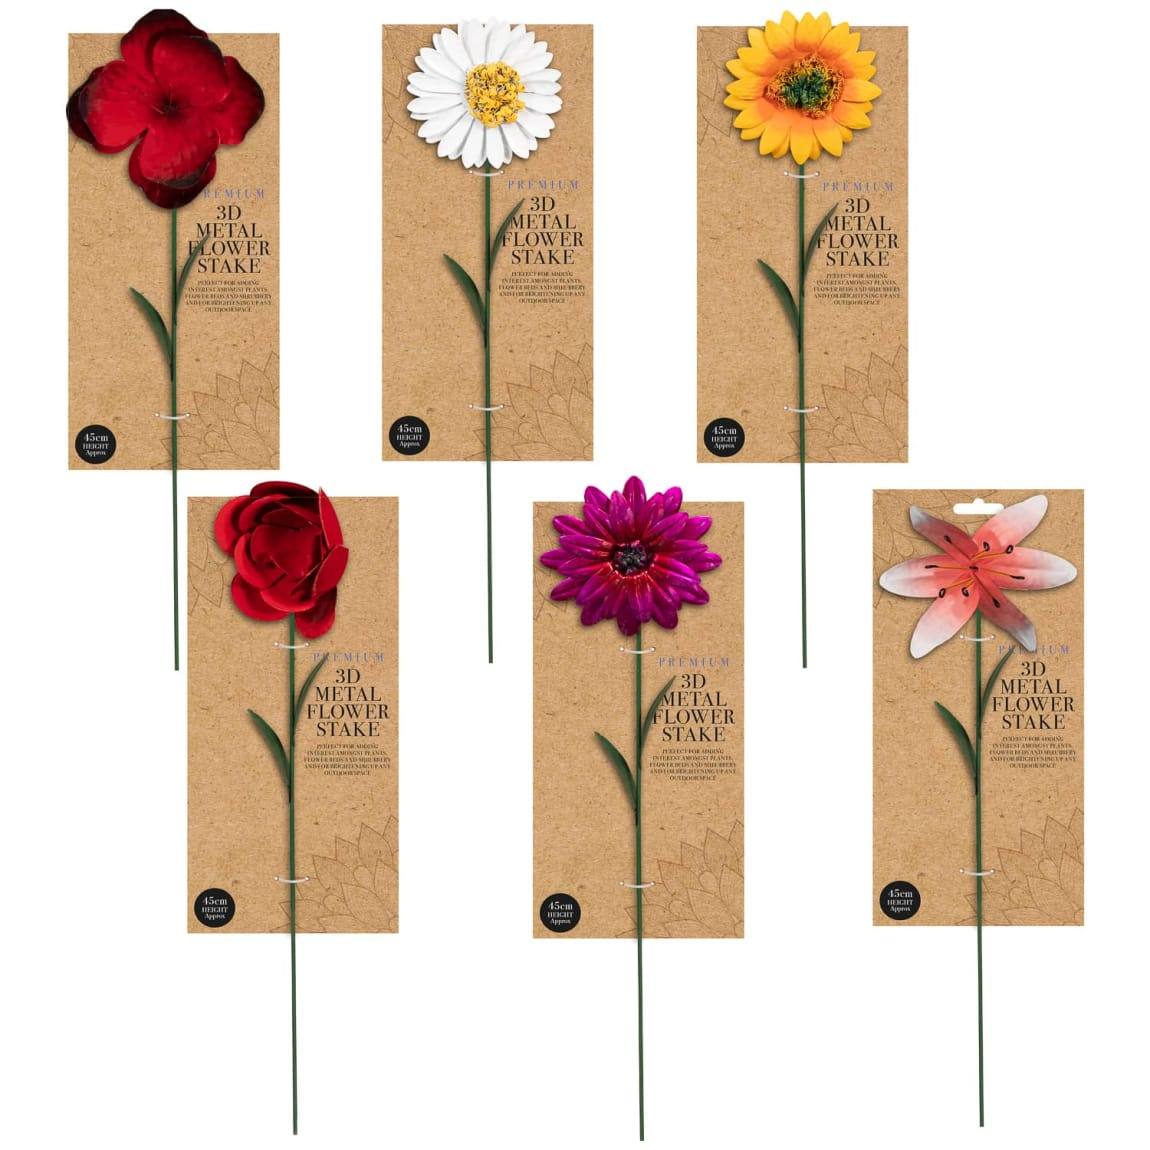 Premium 3D Metal Flower Stake - Rose